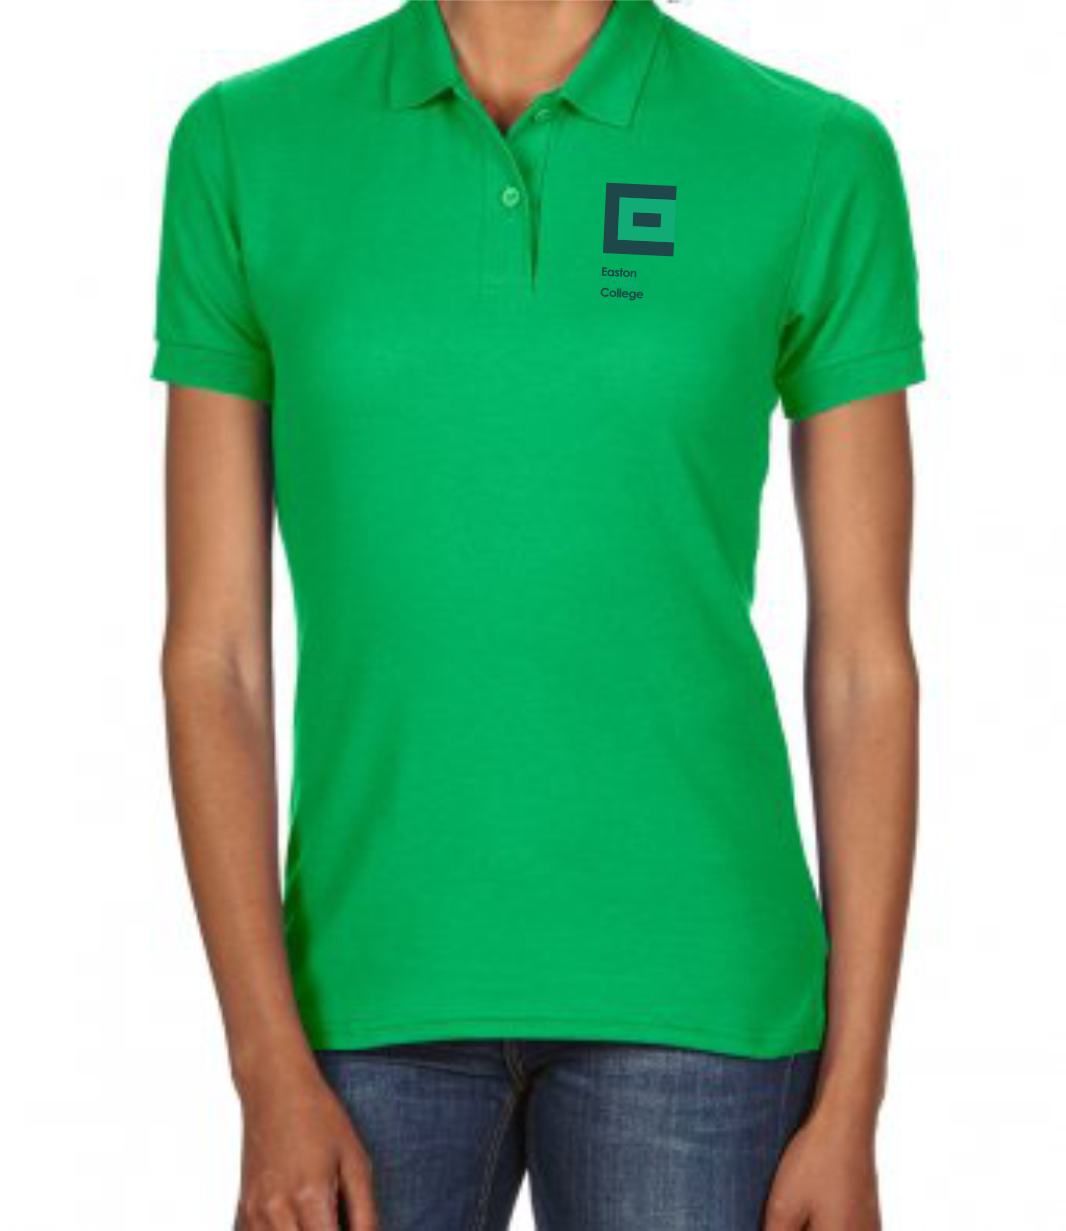 Easton College Animal Studies Girls Polo